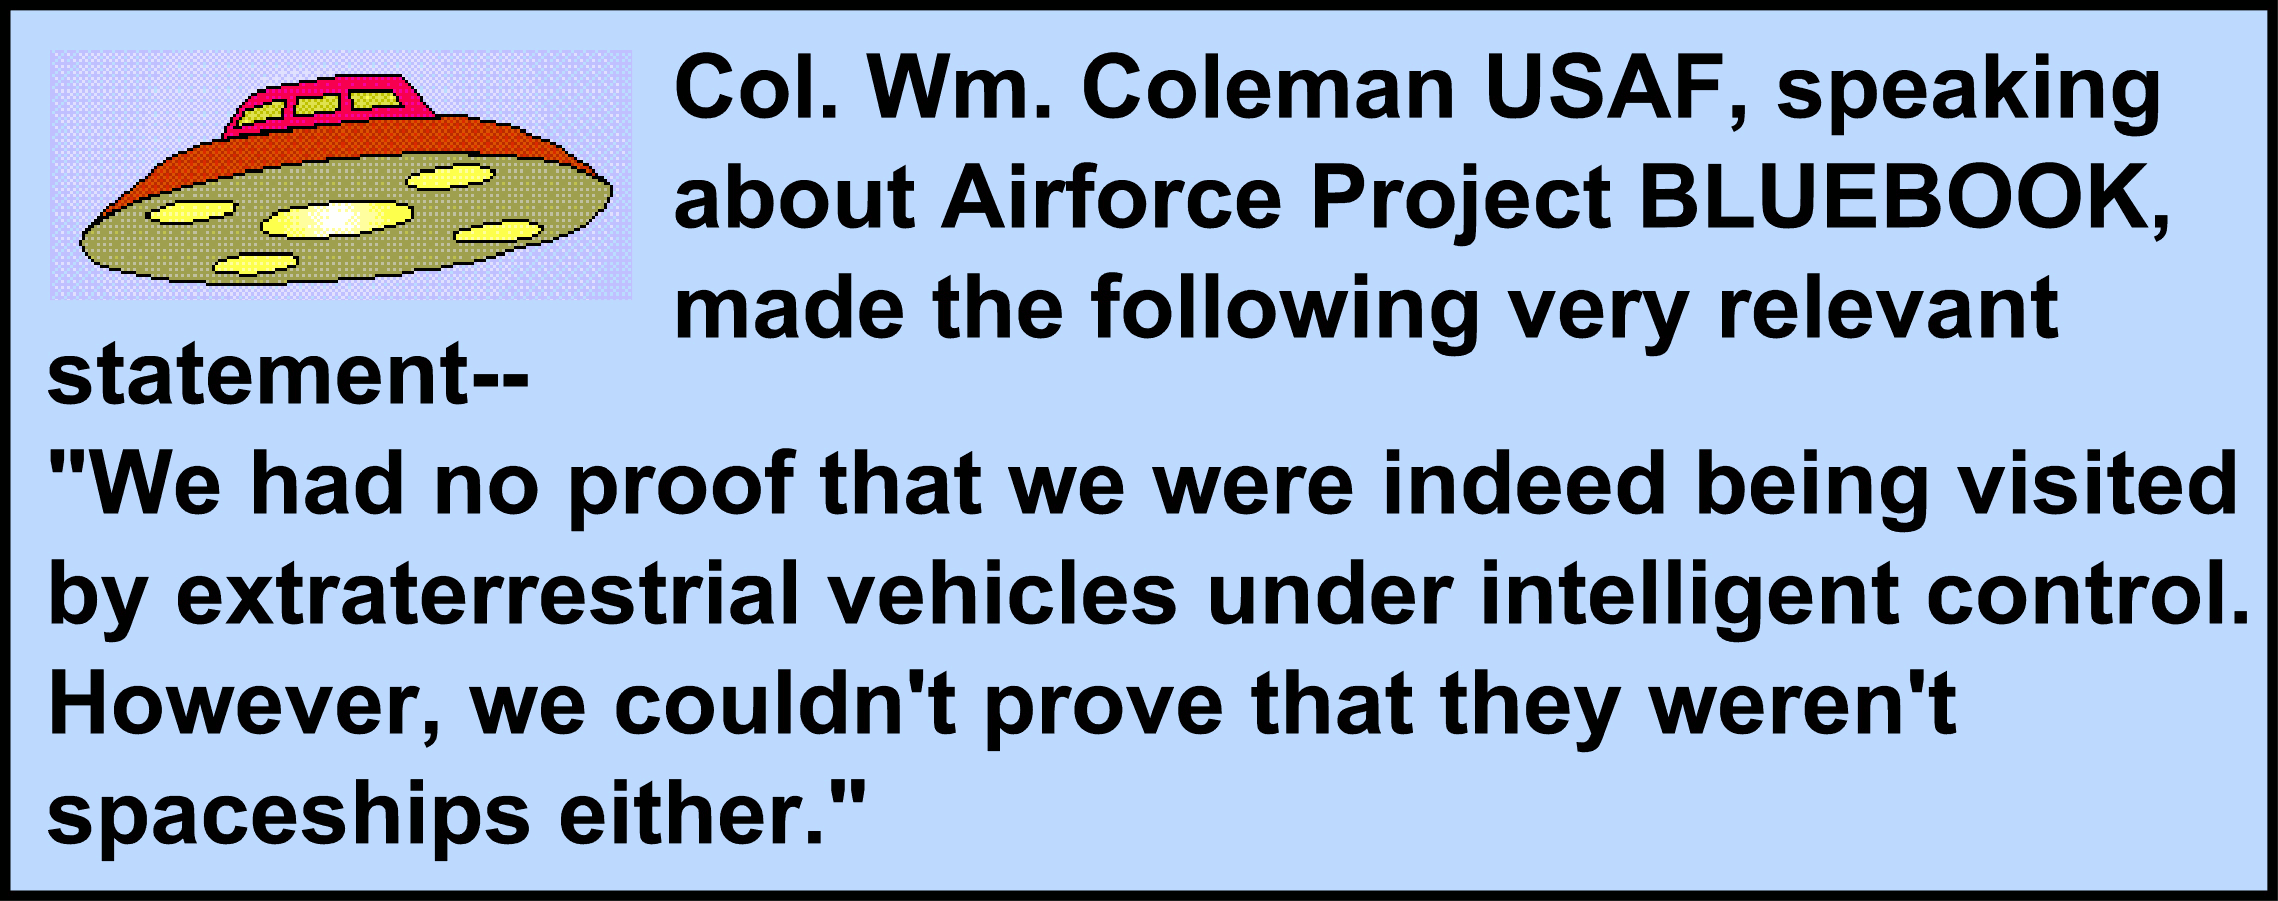 "Image:Col. Wm. Coleman USAF, speaking about Airforce Project BLUEBOOK, made the following very relevant statement--""We had no proof that we were indeed being visited by extraterrestrial vehicles under intelligent control. However, we couldn't prove that they weren't spaceships either."""